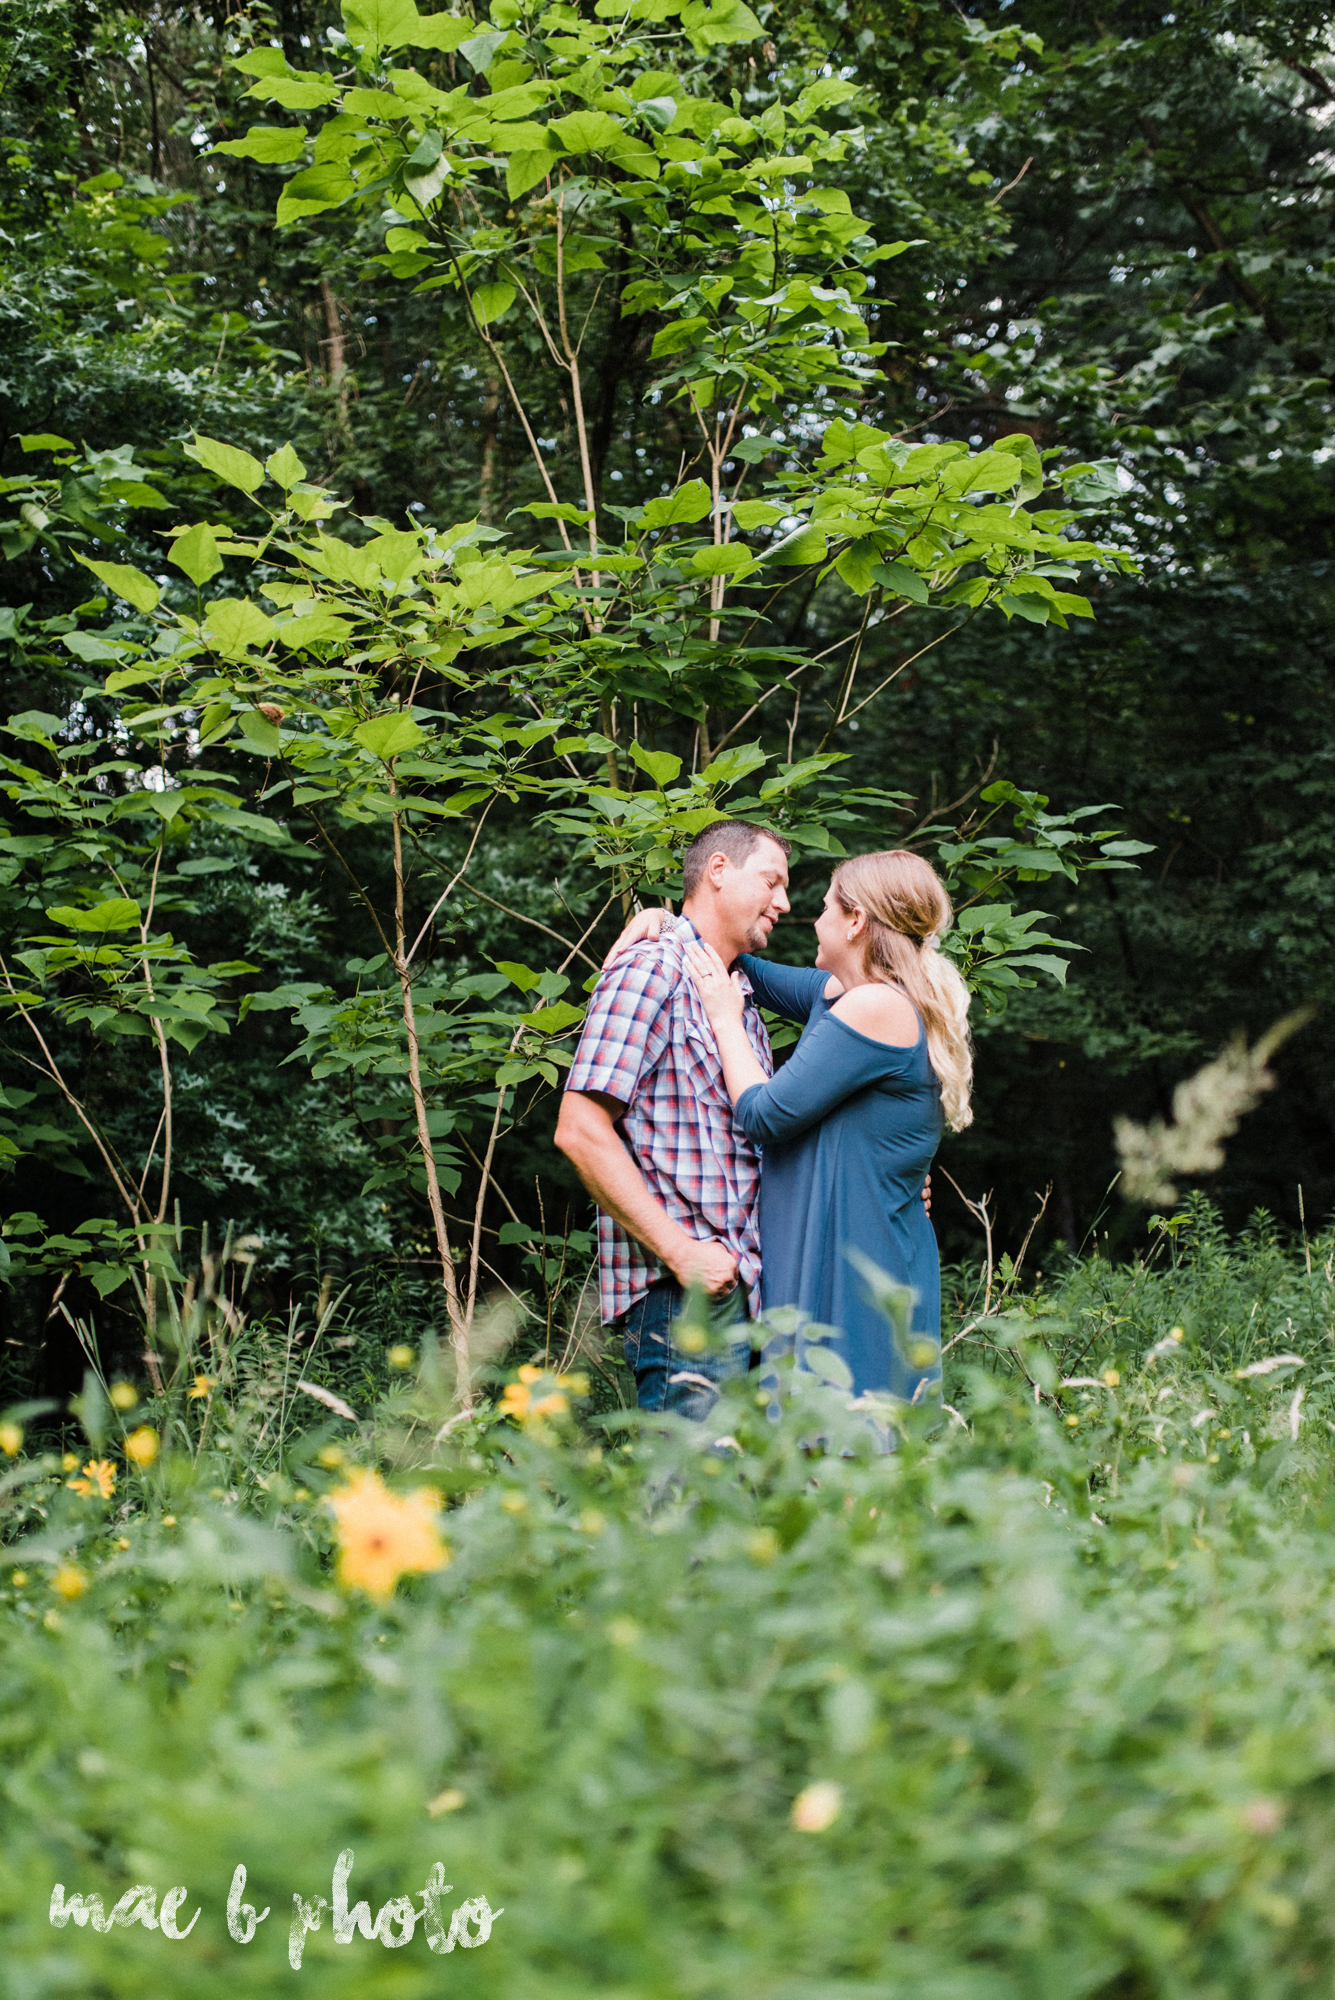 becca and rich's woodsy summer engagement session at ford nature center in mill creek park in youngstown ohio photographed by cleveland wedding photographer mae b photo-52.jpg